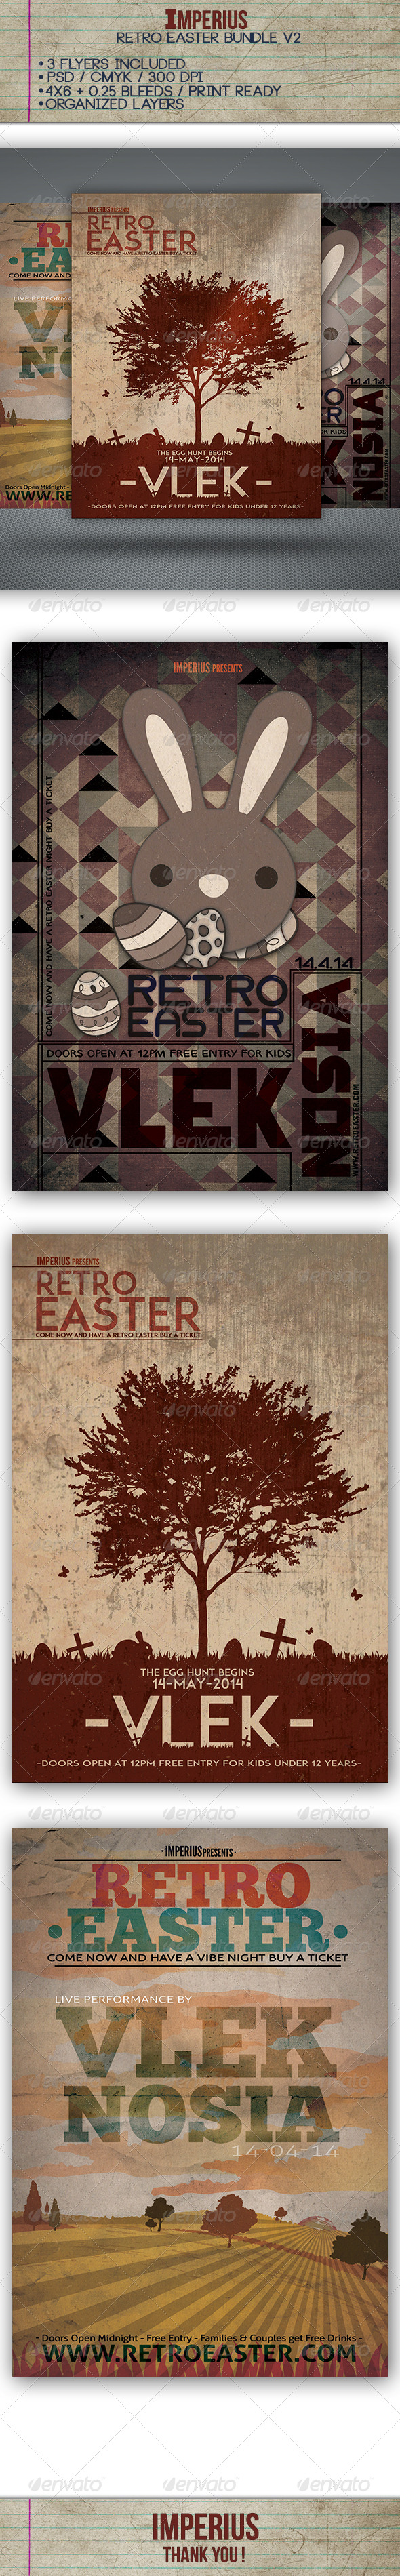 Retro Easter Bundle V2 - Flyers Print Templates